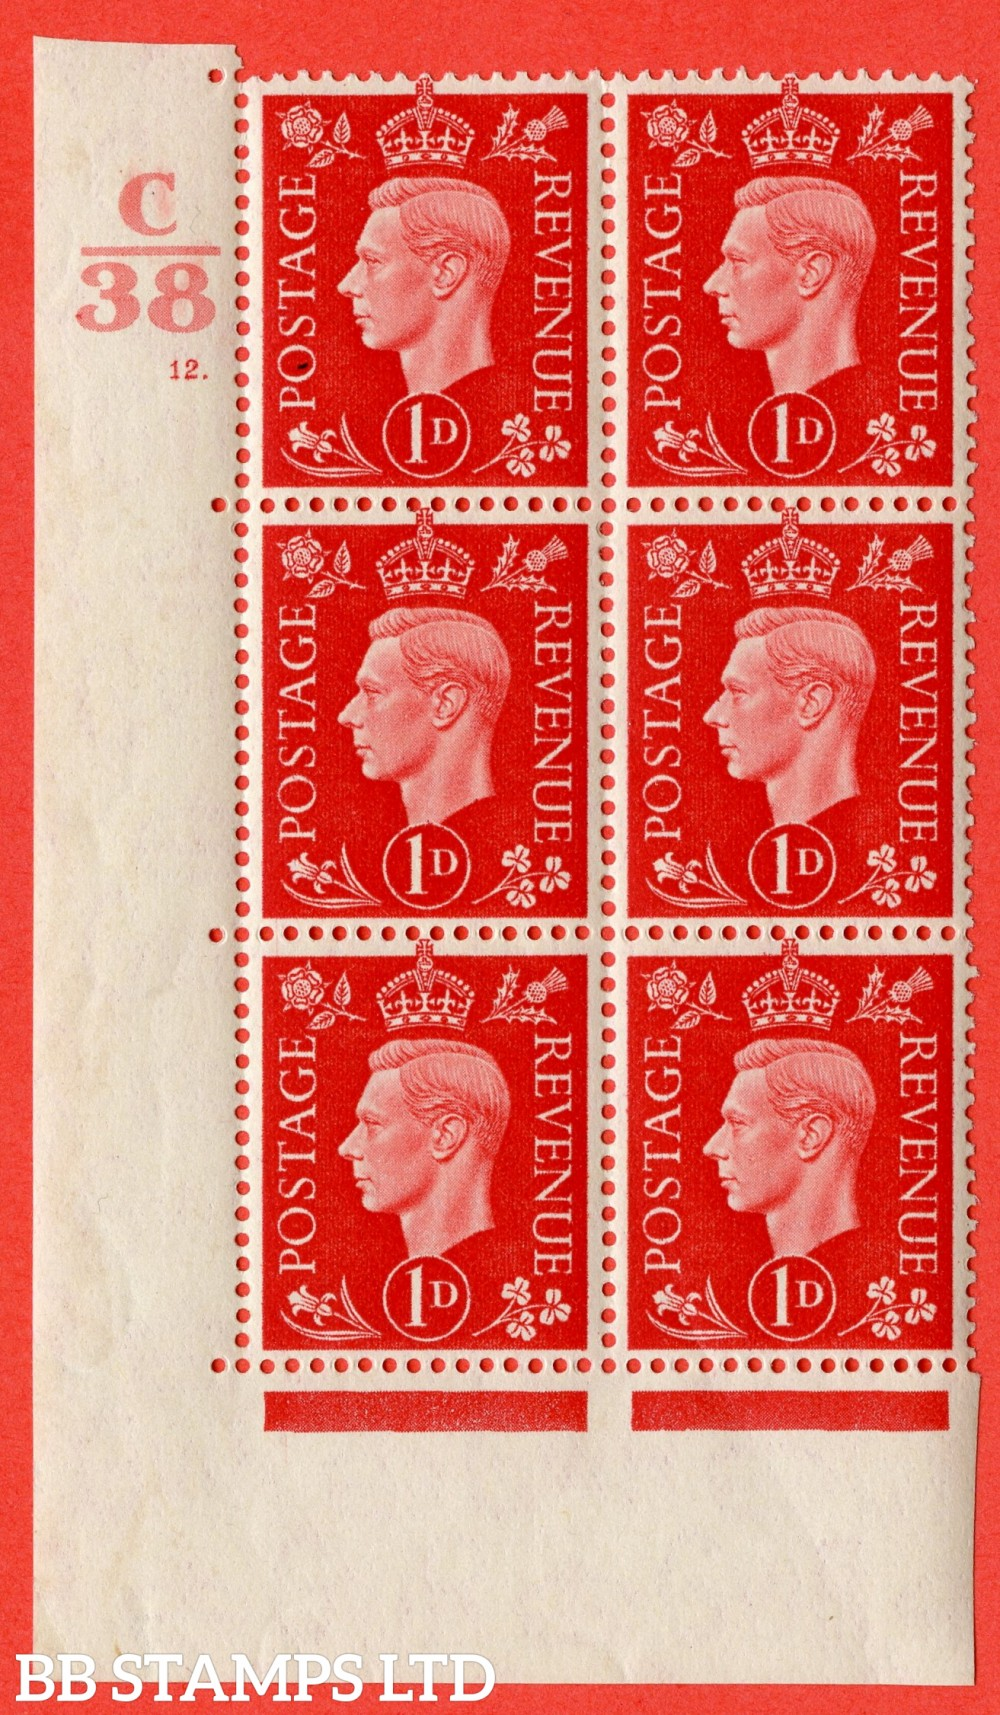 """SG. 463. Q4. 1d Scarlet. A superb UNMOUNTED MINT """" Control C38 cylinder 12 dot """" block of 6 with perf type 5 E/I."""